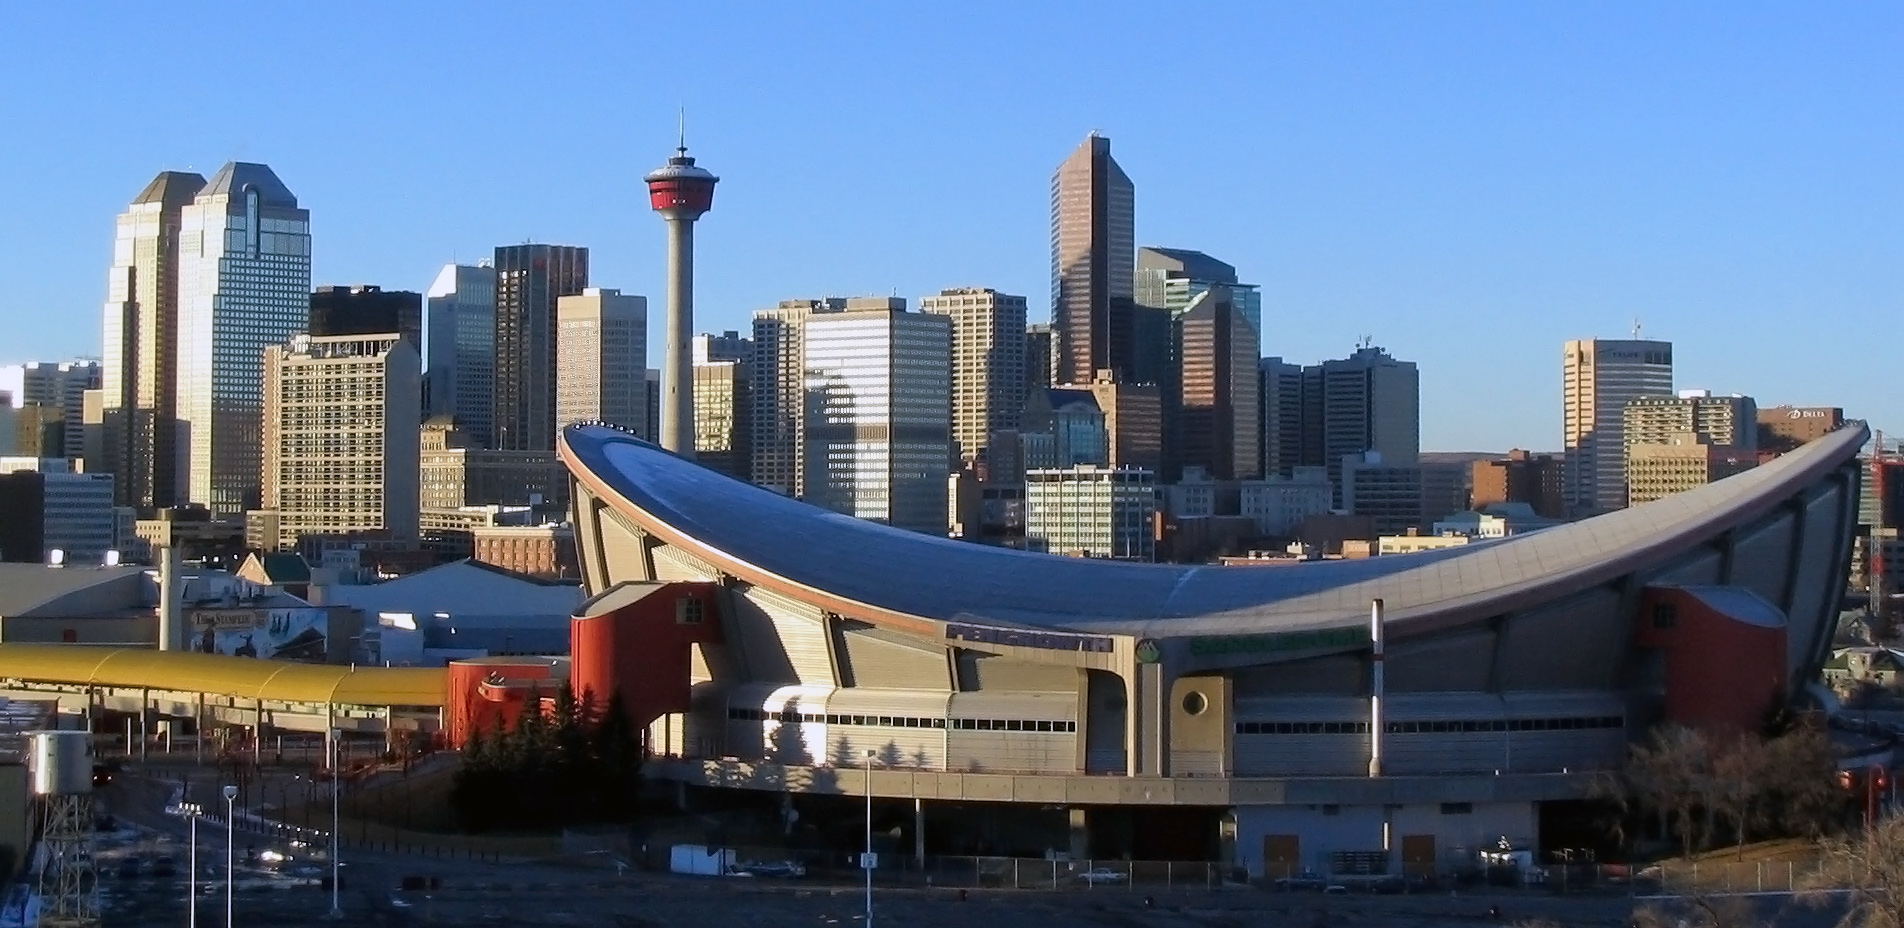 Calgary, Alberta- A Mecca for the Oil and Gas Sector